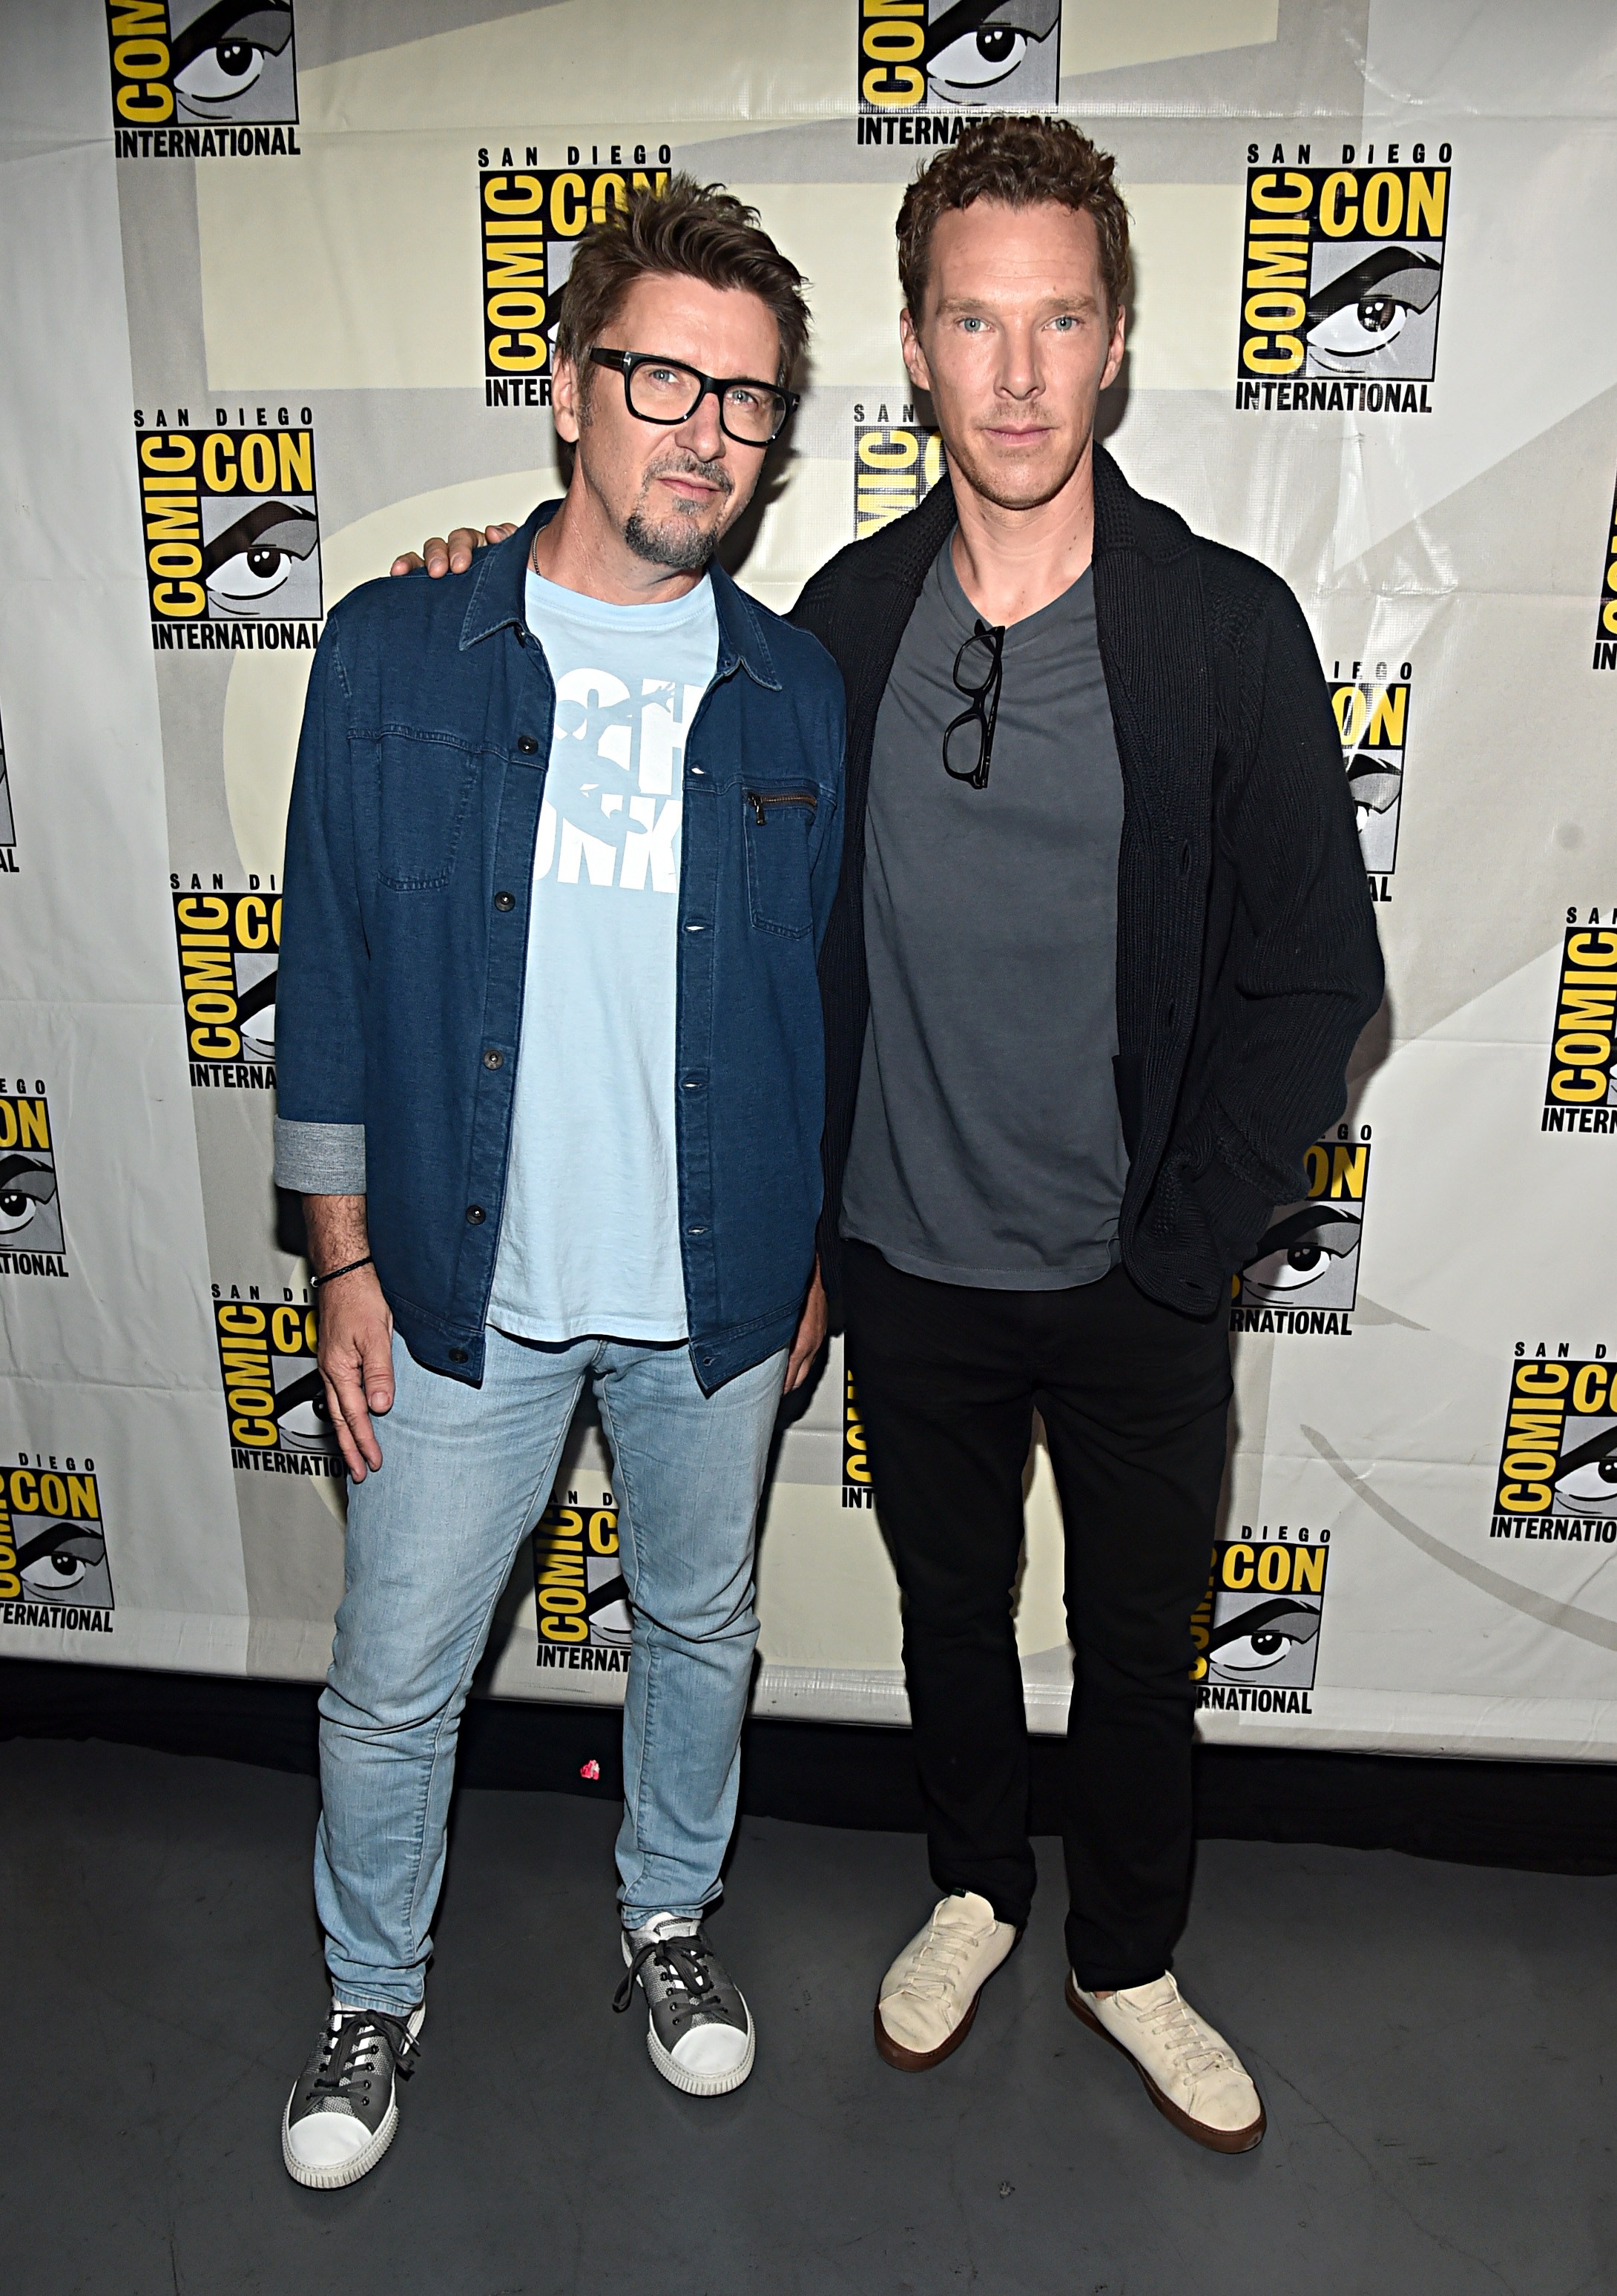 Doctor Strange in the Multiverse of Madness - Scott Derrickson and Benedict Cumberbatch